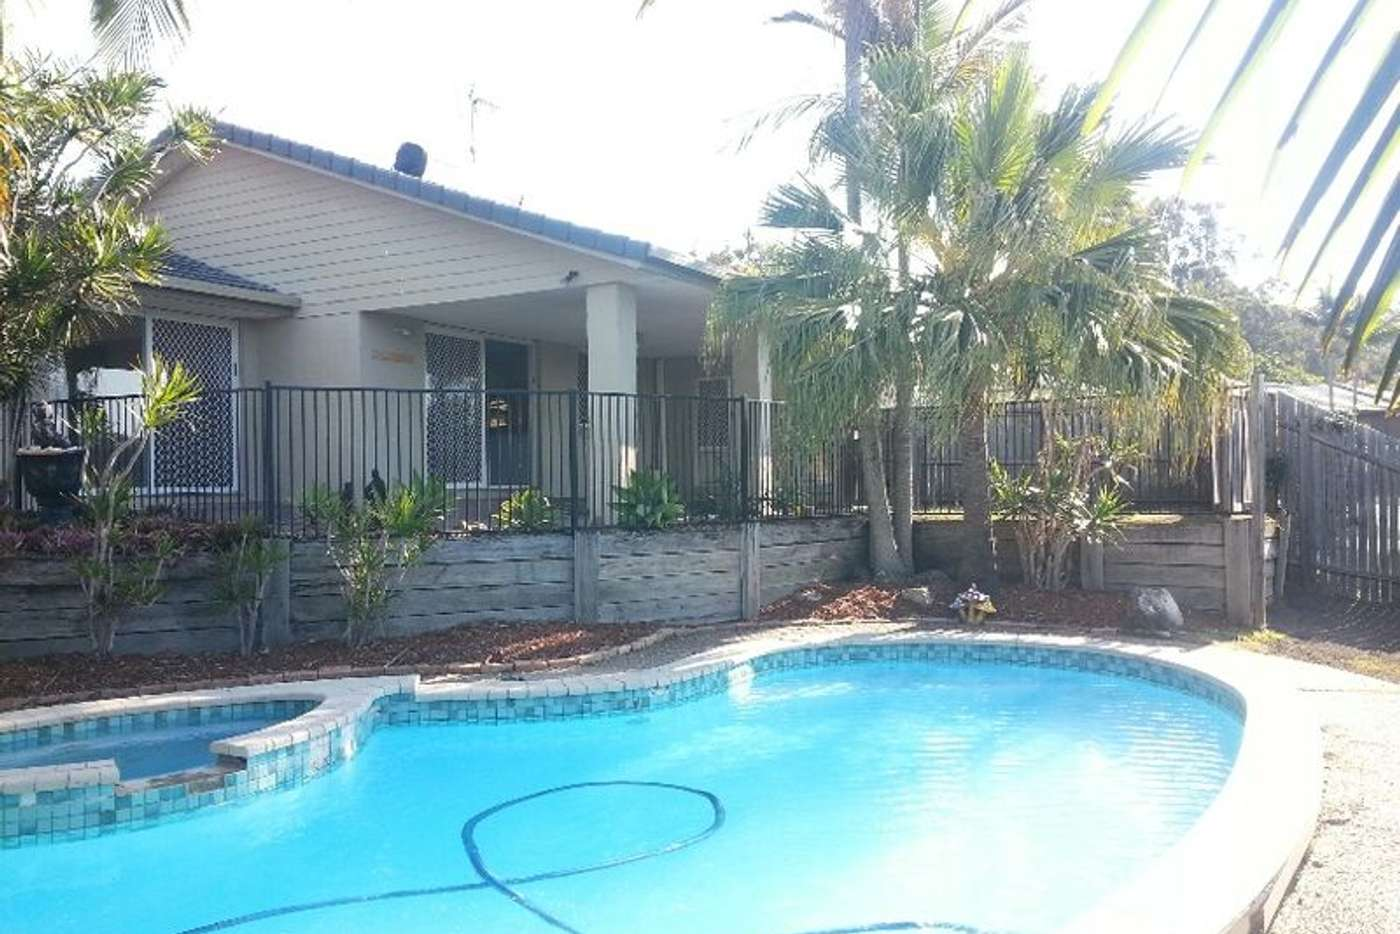 Main view of Homely house listing, 4 Tambo Court, Helensvale QLD 4212